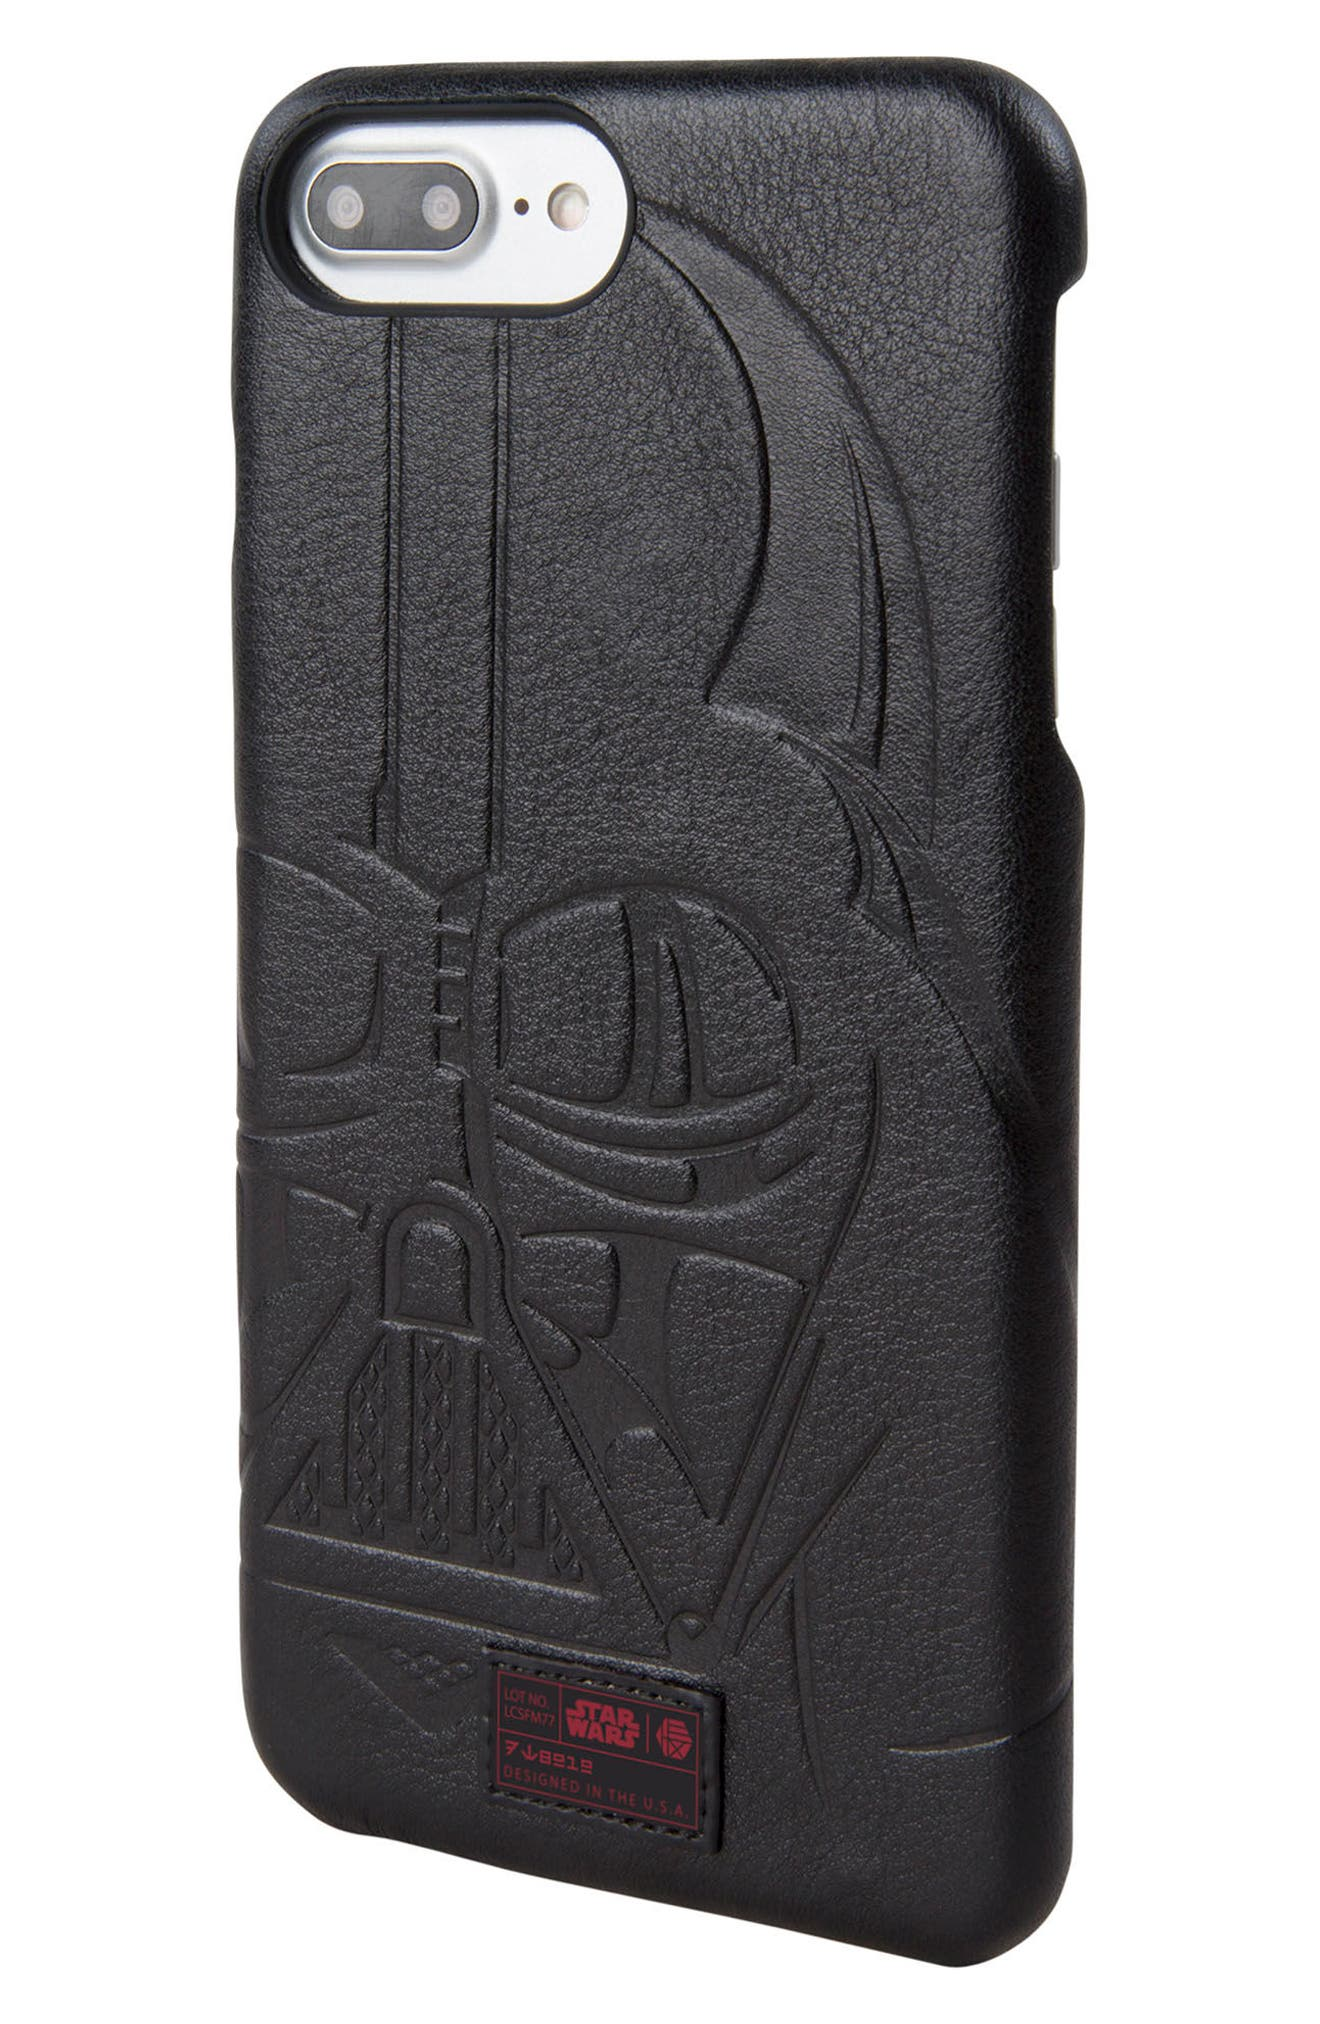 Darth Vader iPhone 6/6s/7/8 Plus Case,                             Alternate thumbnail 2, color,